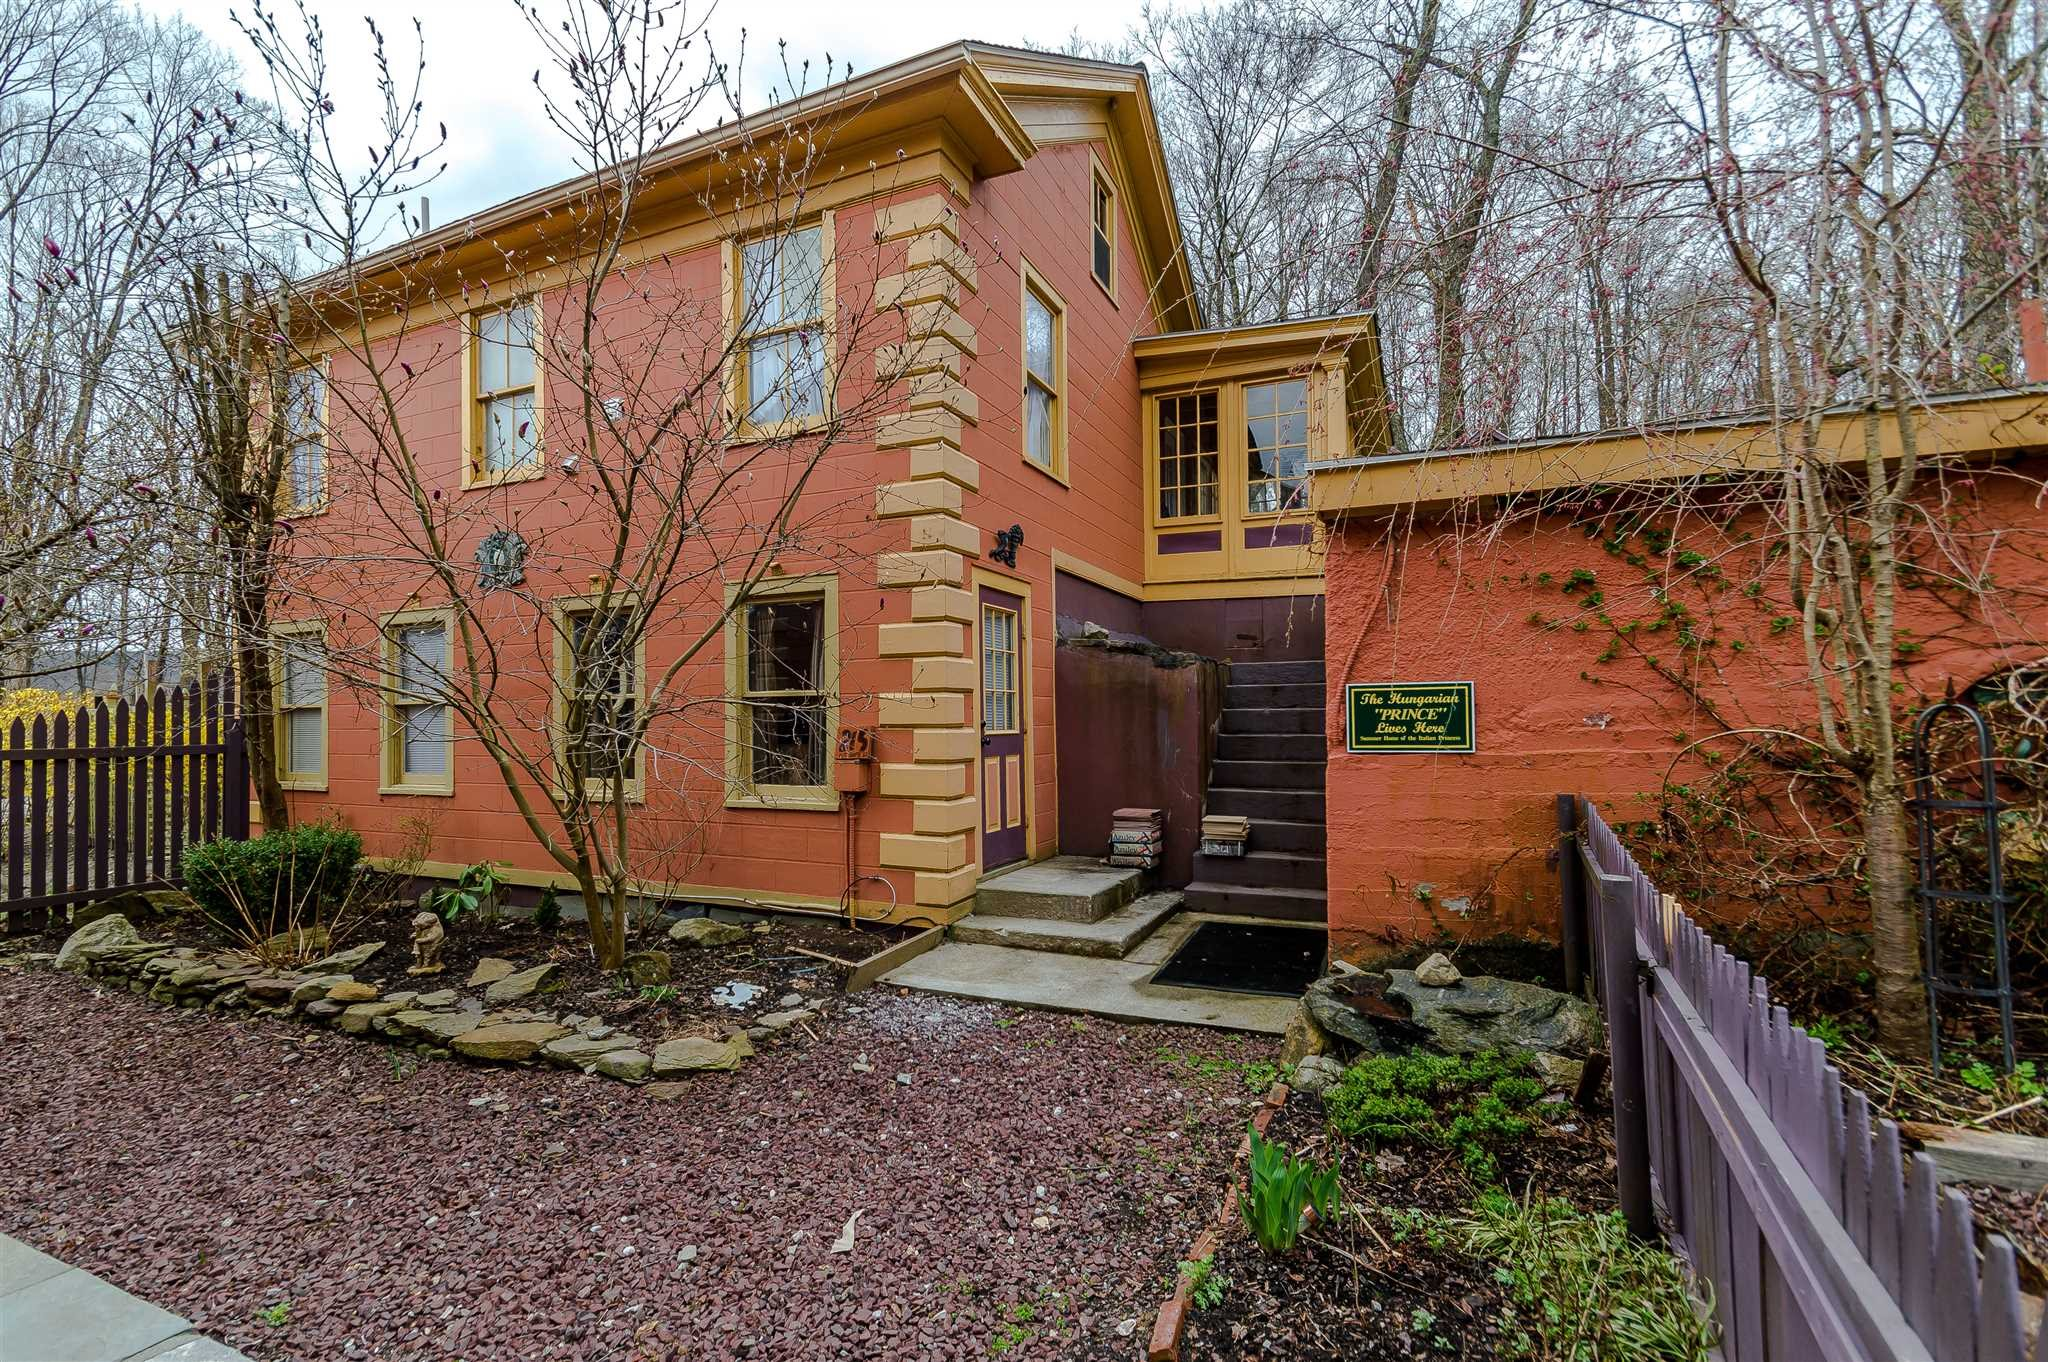 215 OLD ROUTE 22 Pawling, NY 12564 - MLS #: 361525